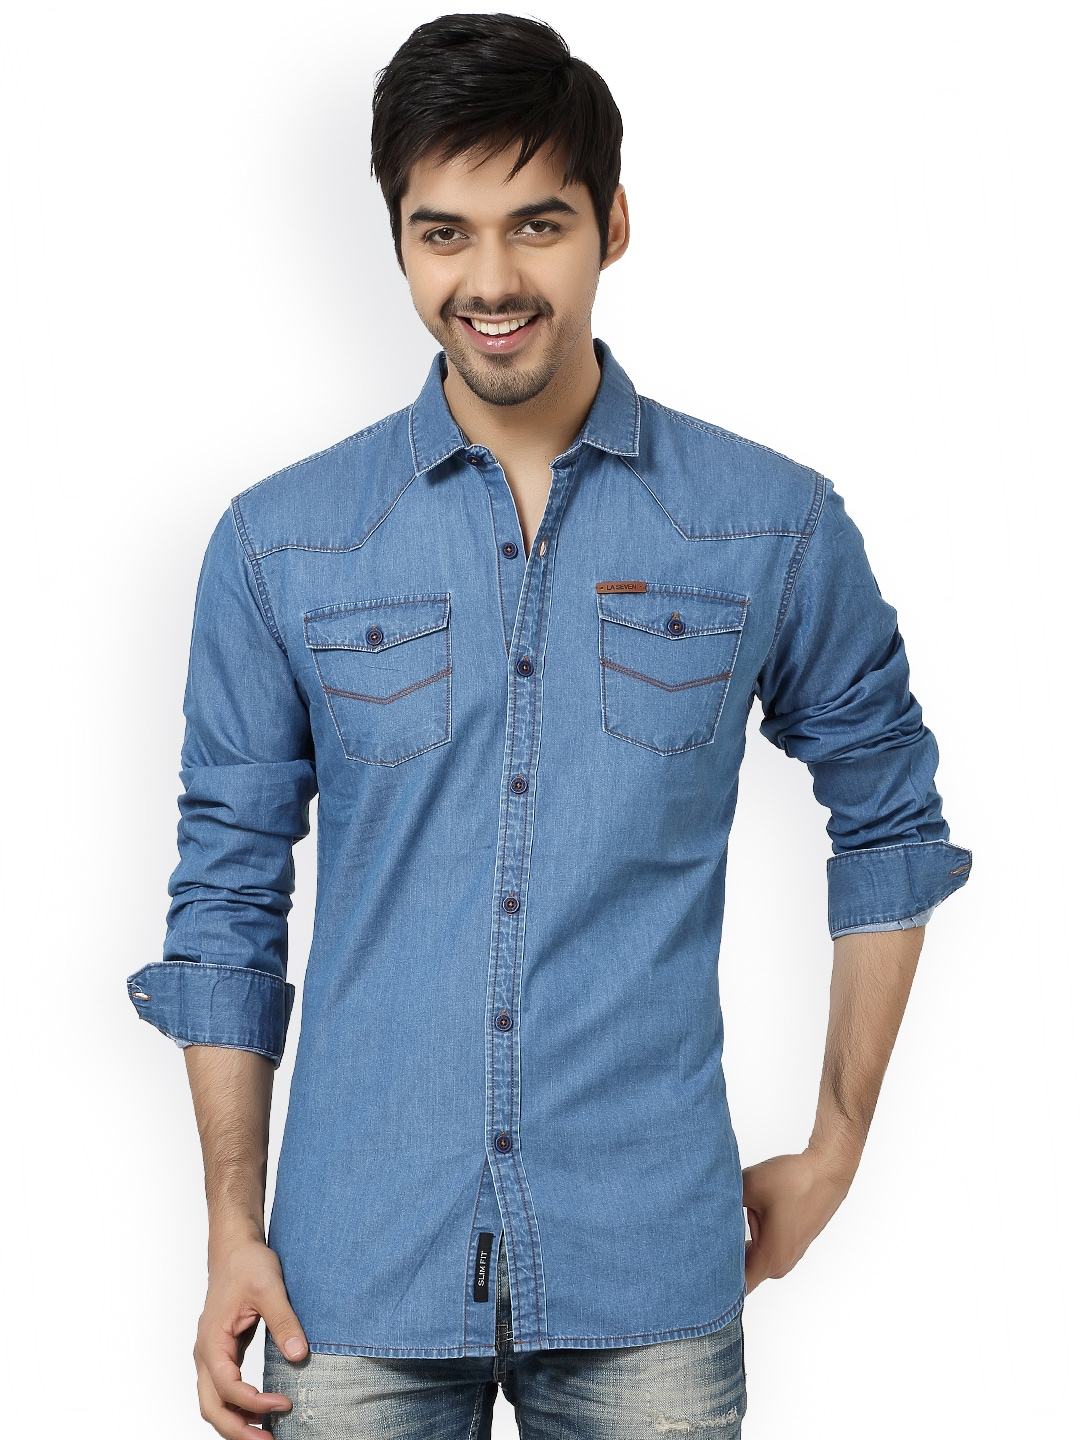 Denim Shirts - Buy Denim Shirts for Men Online in India - Myntra